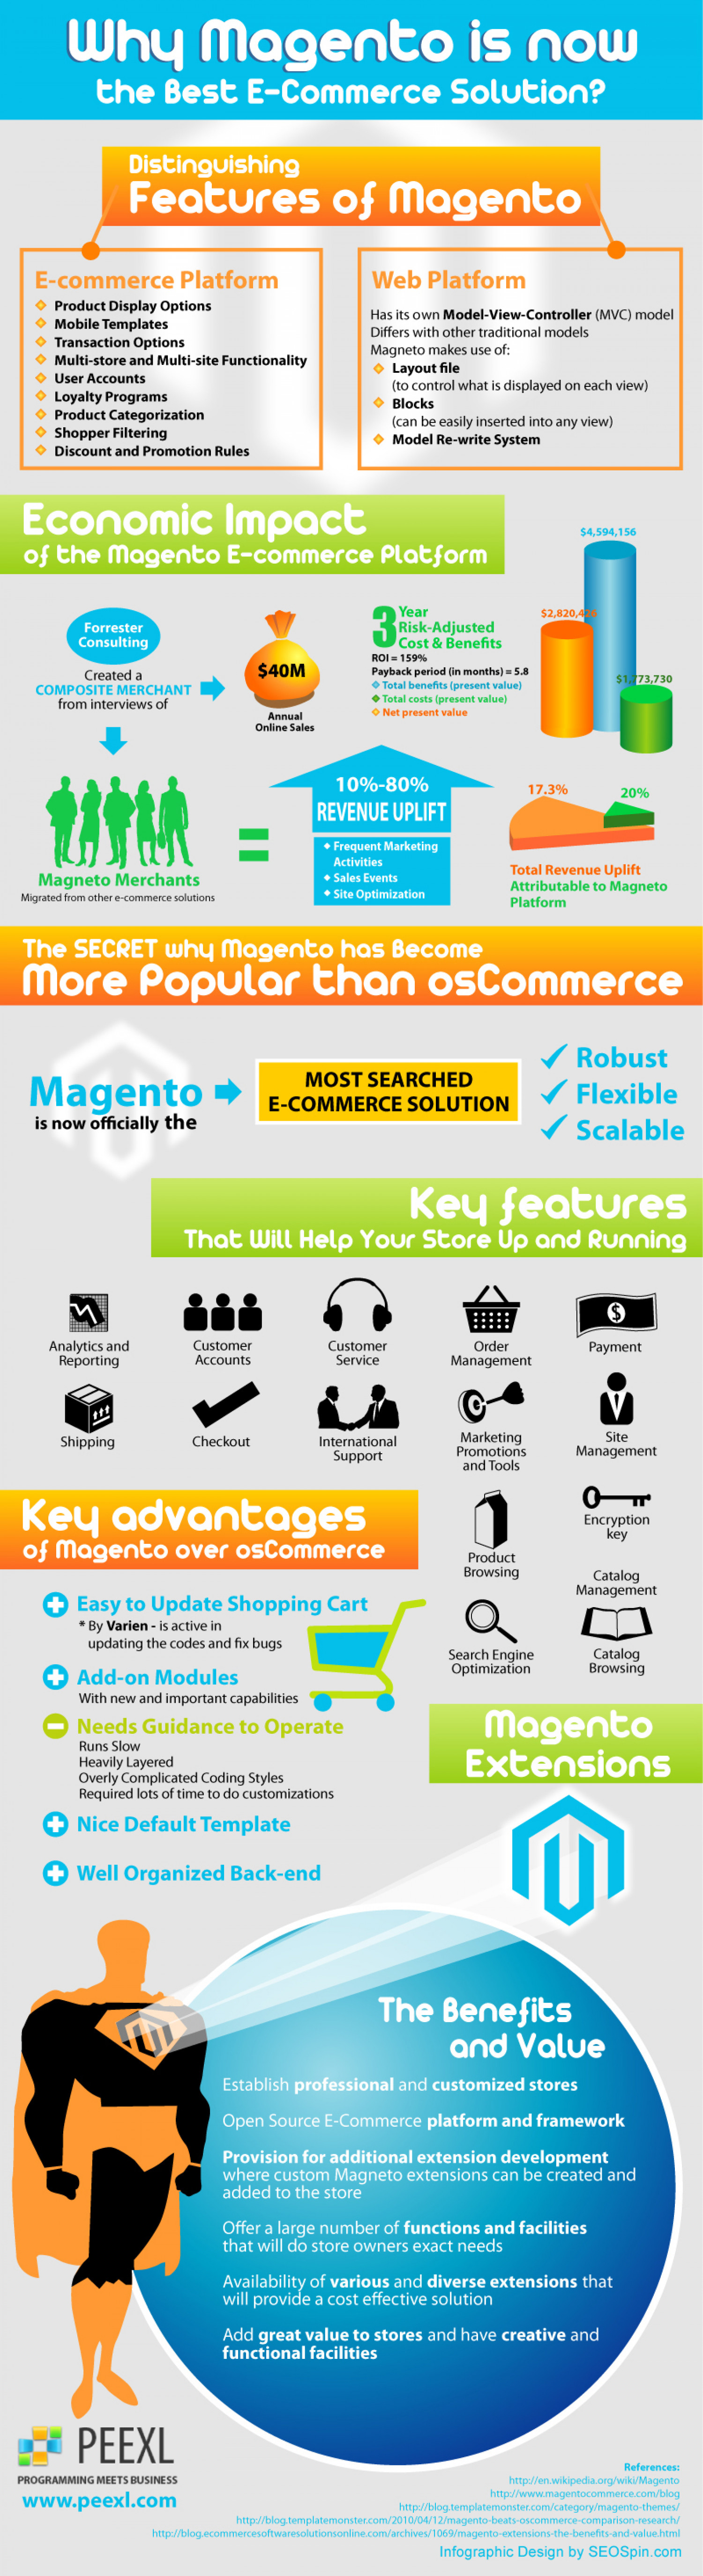 Why Magento Is Now The Best E-Commerce Solution Infographic